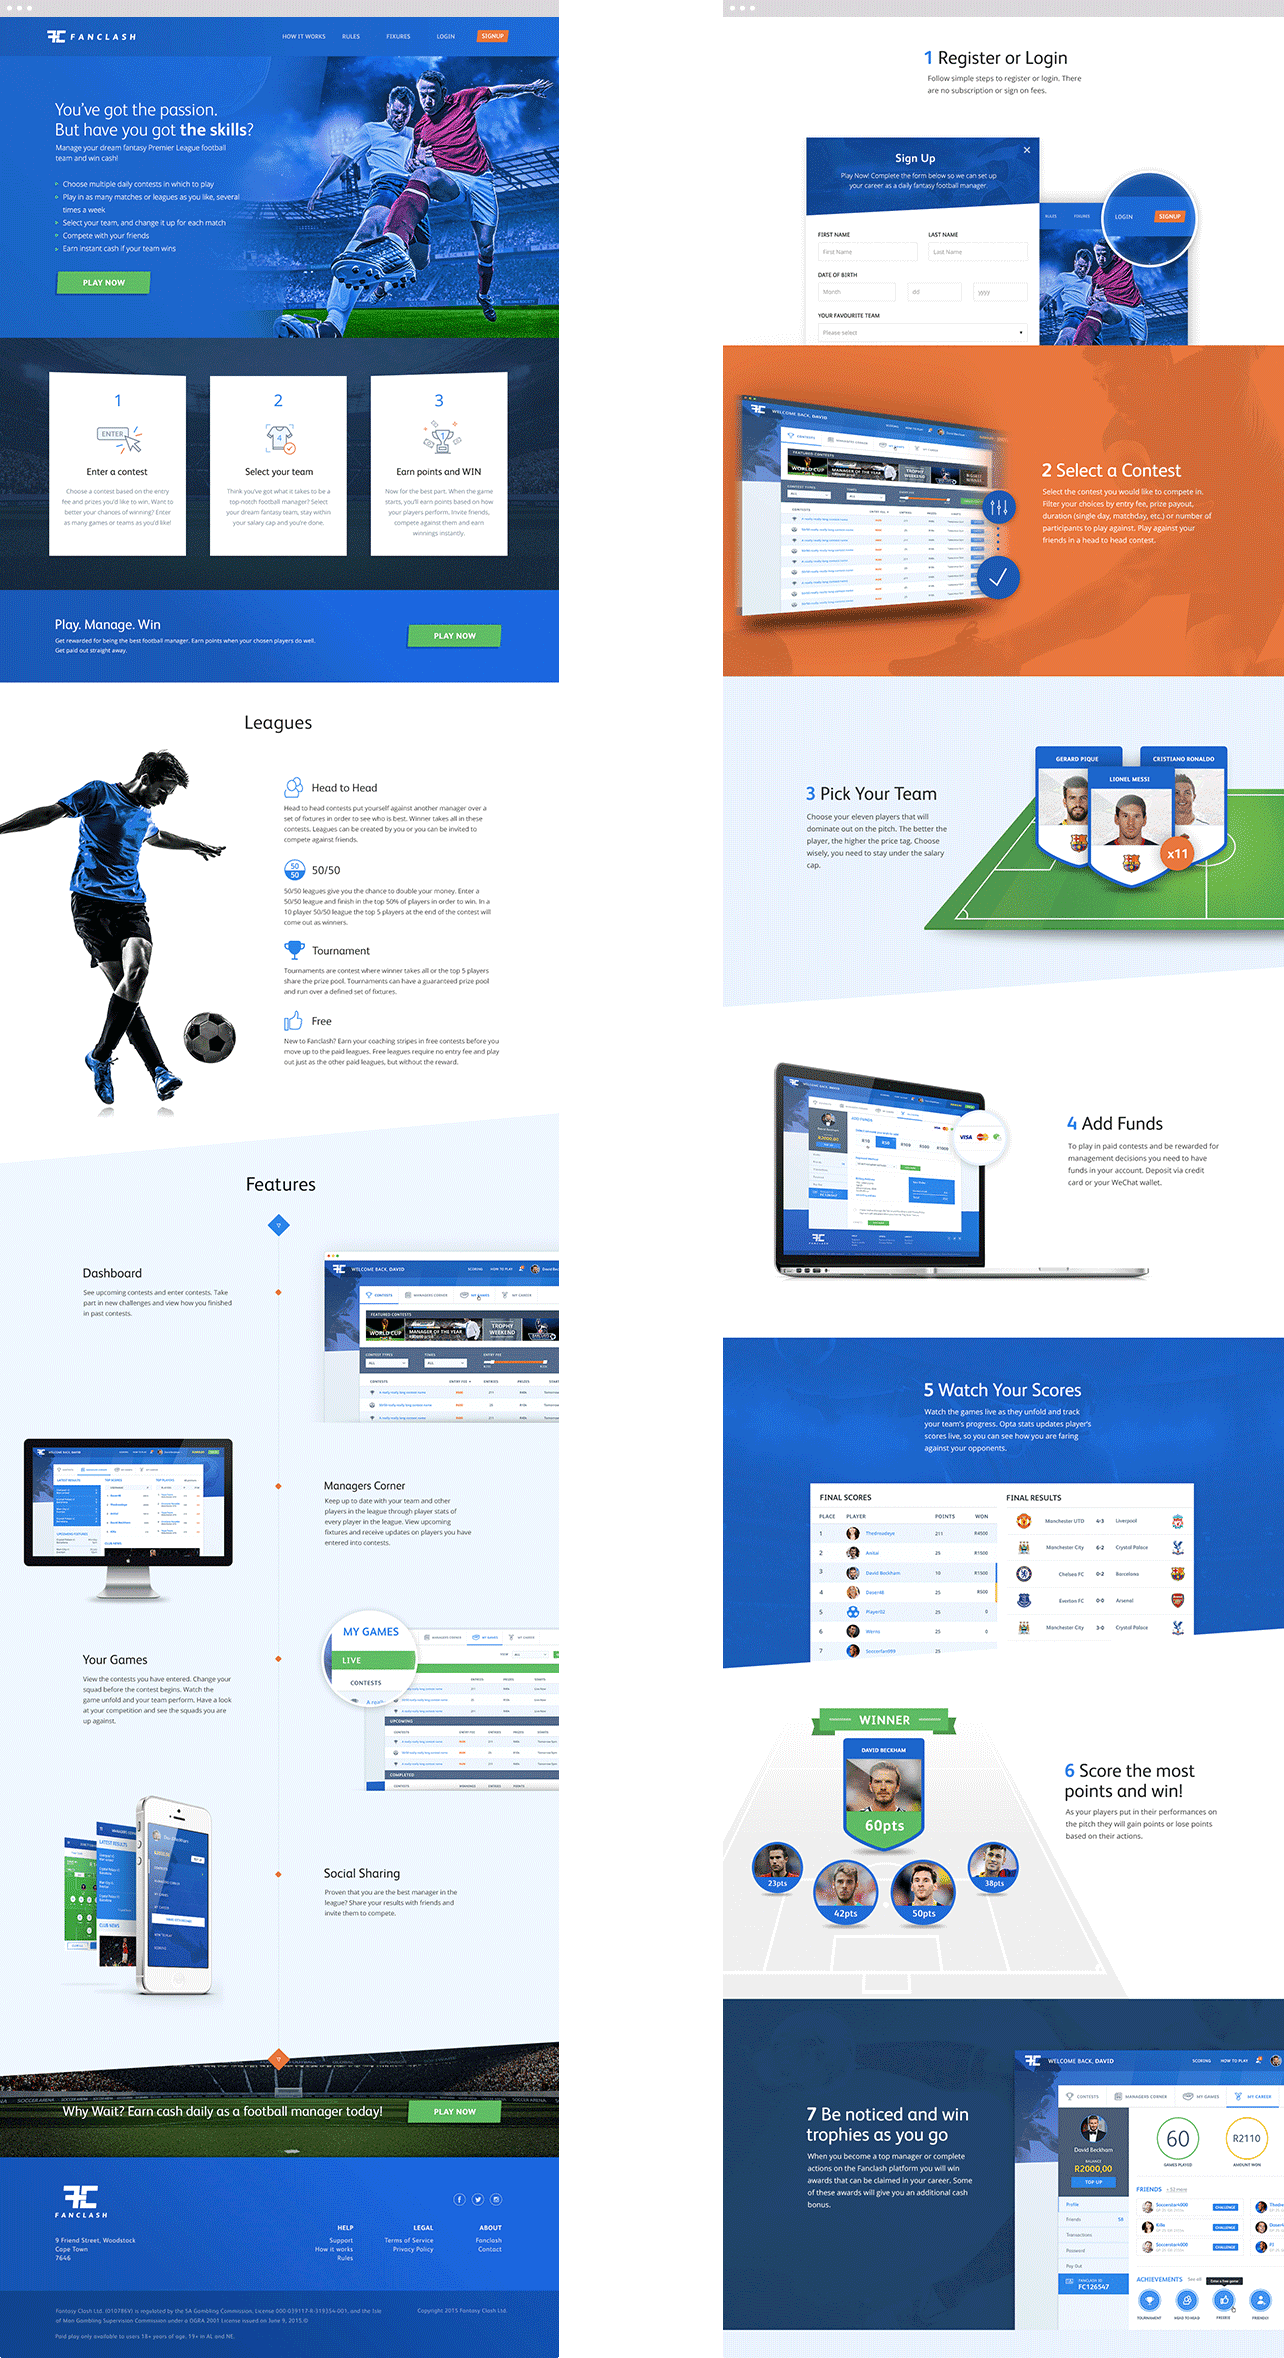 Fanclash Designs For Marketing Site